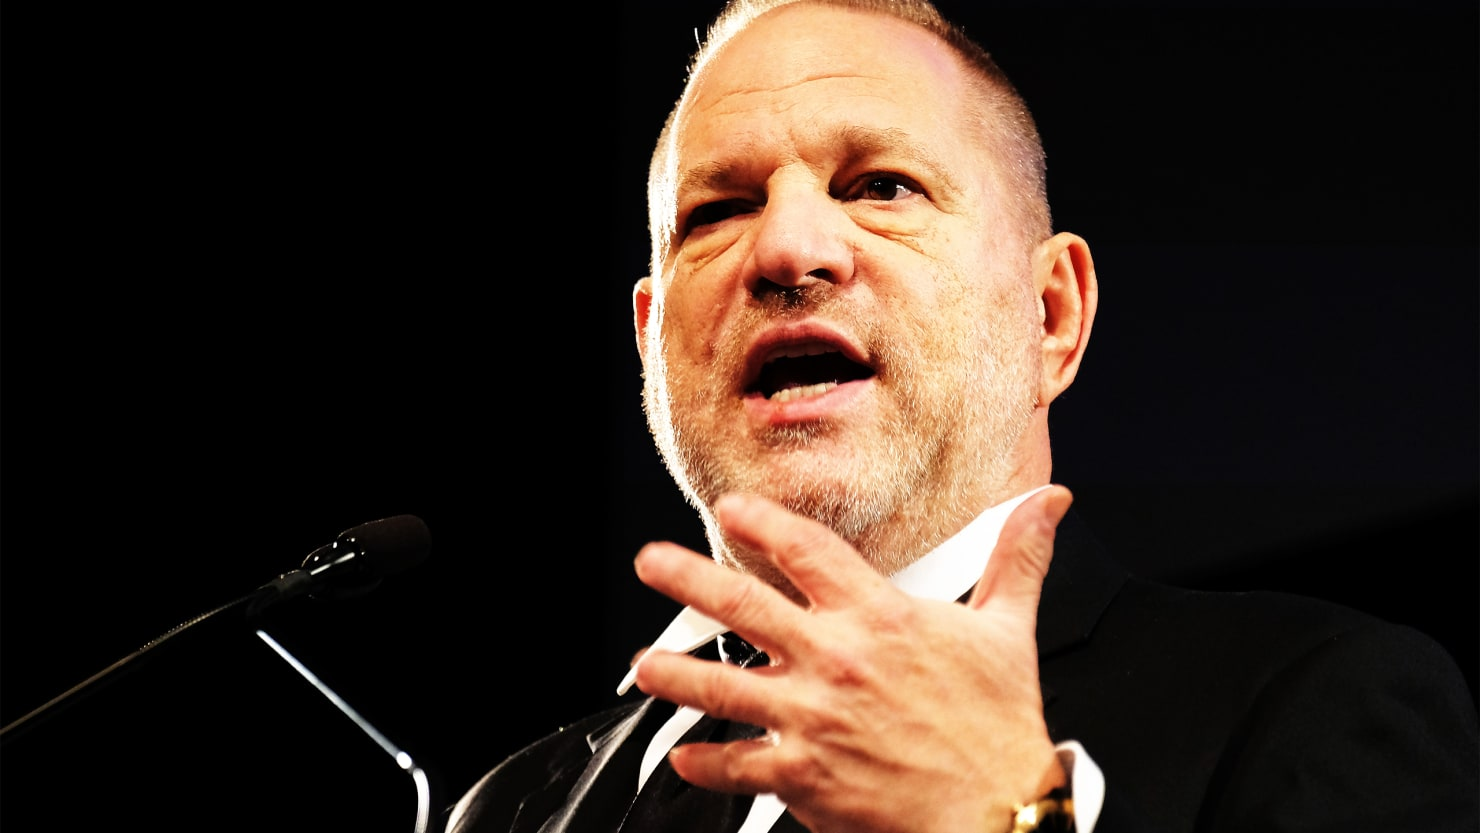 Harvey Weinstein Begged Hollywood Buddies to Write Letters to Save His Job